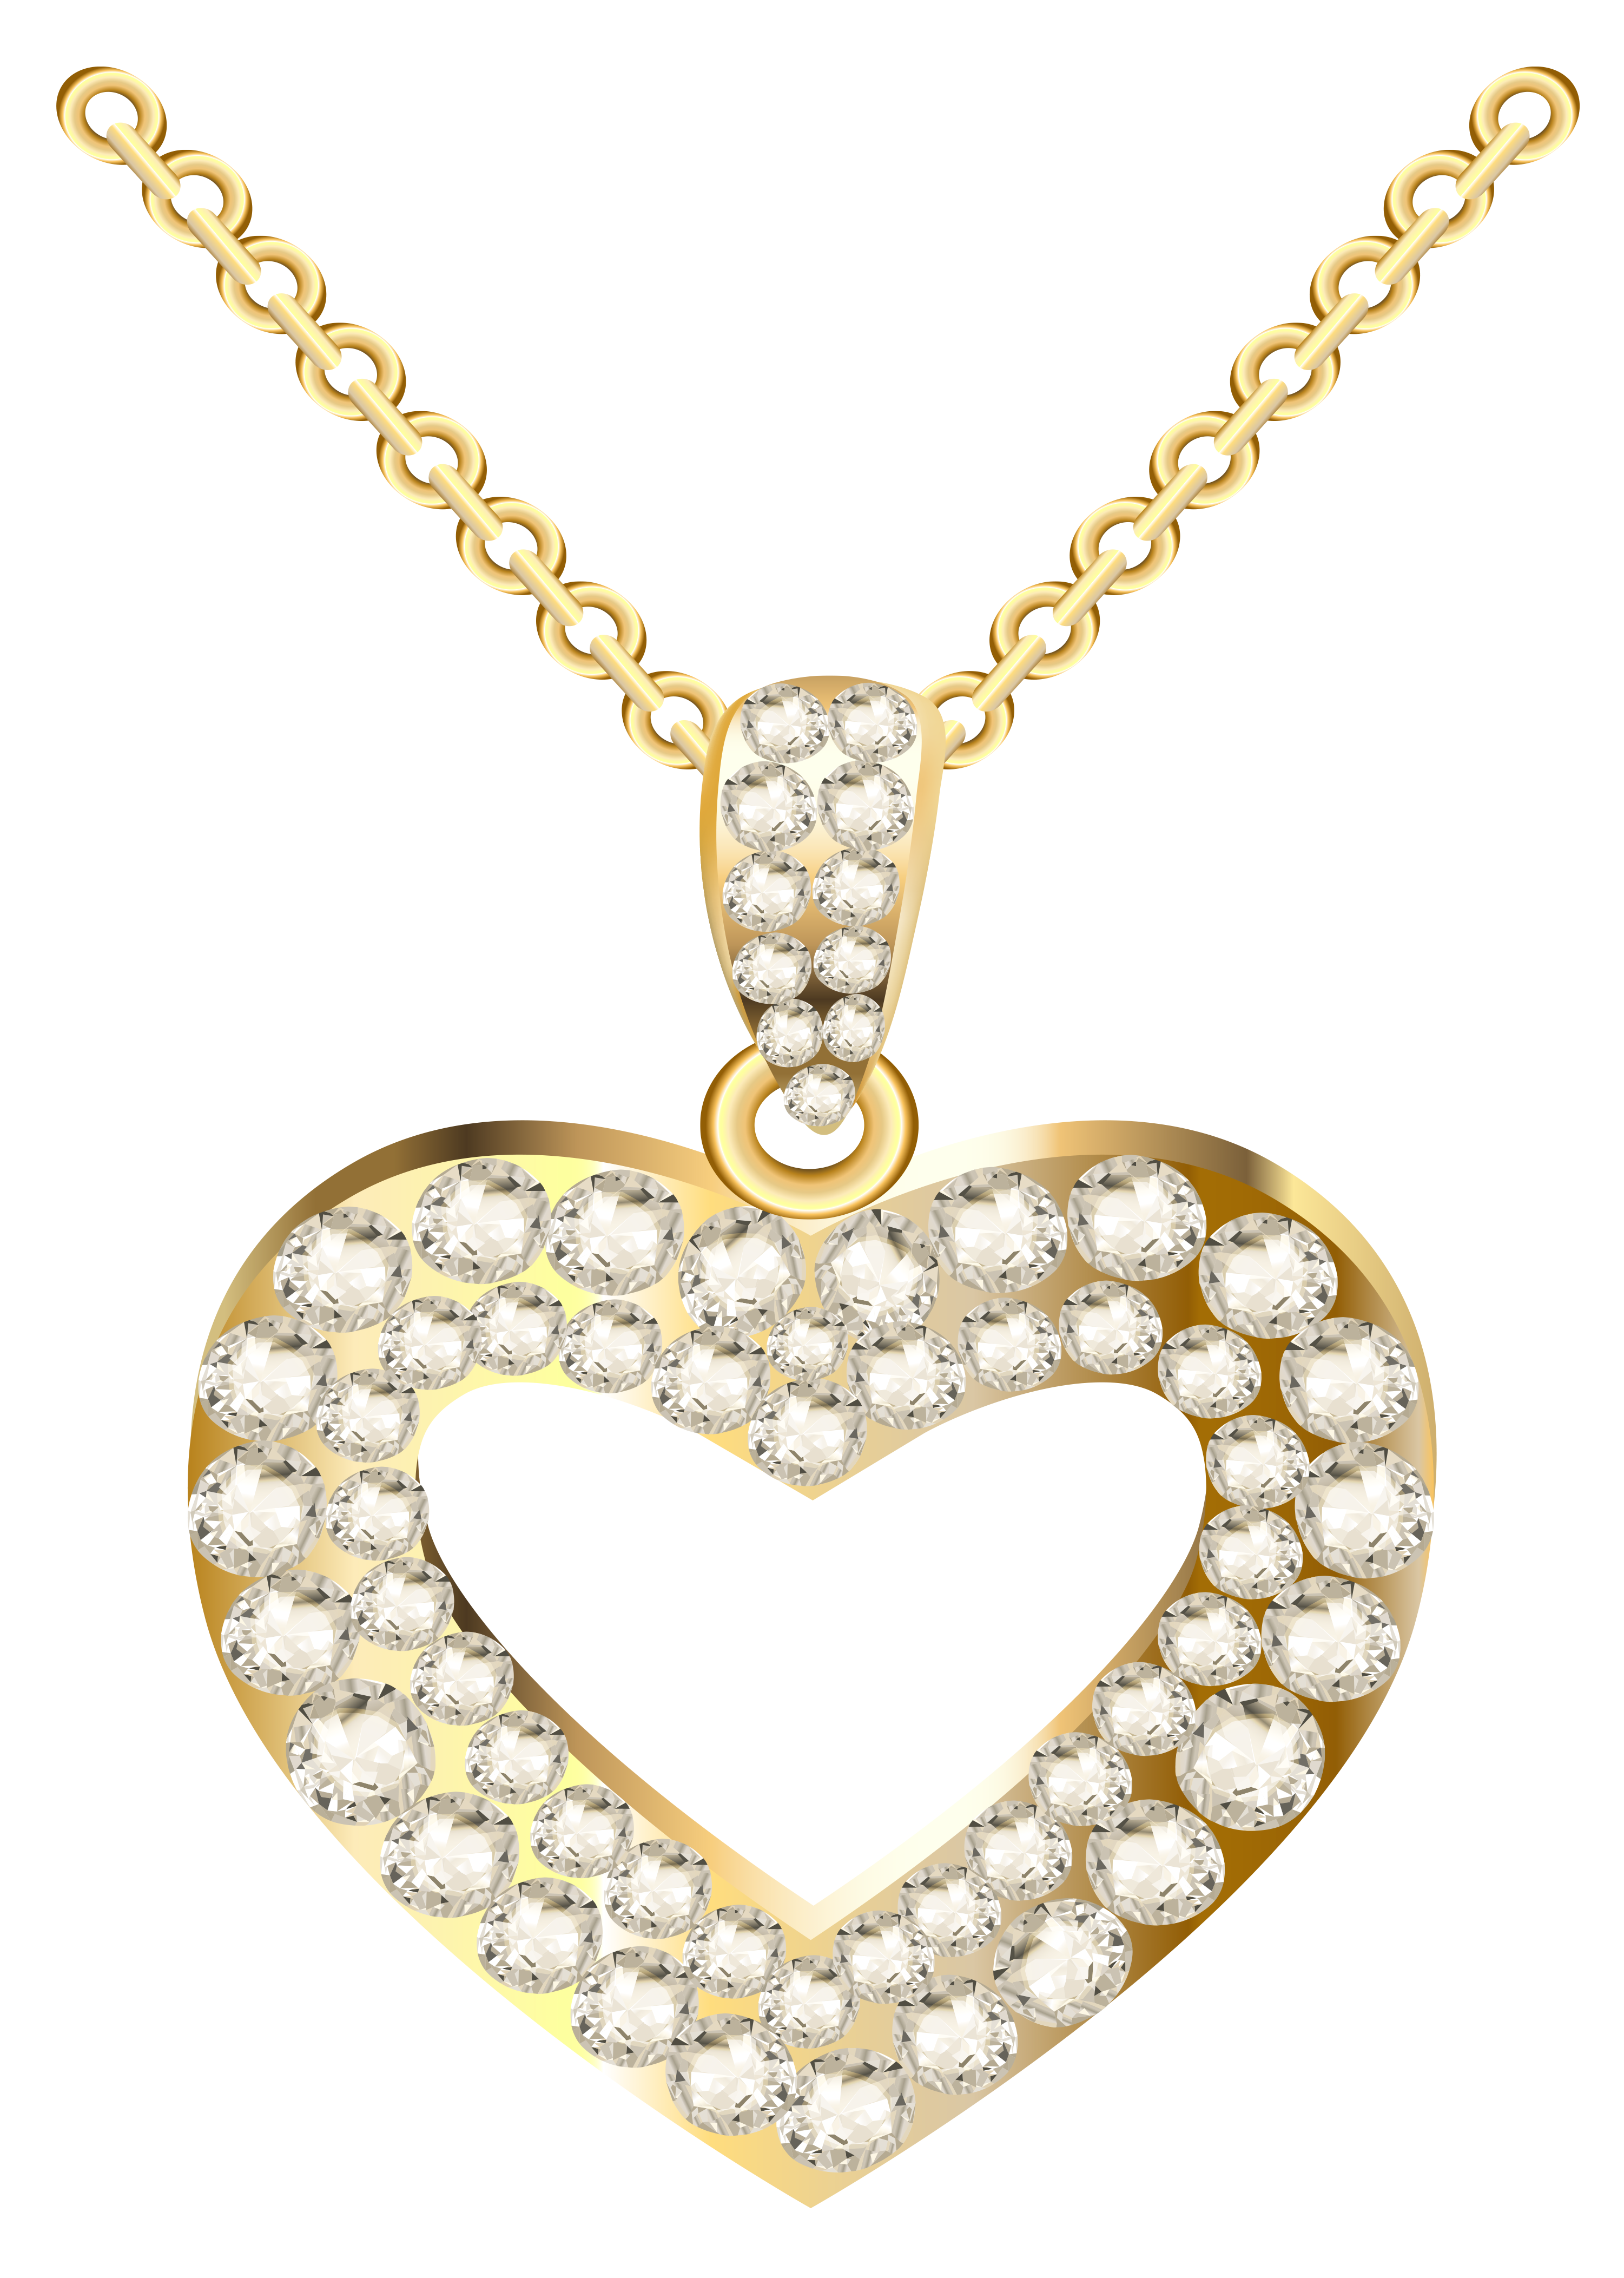 Necklace Clipart - Cliparts.co